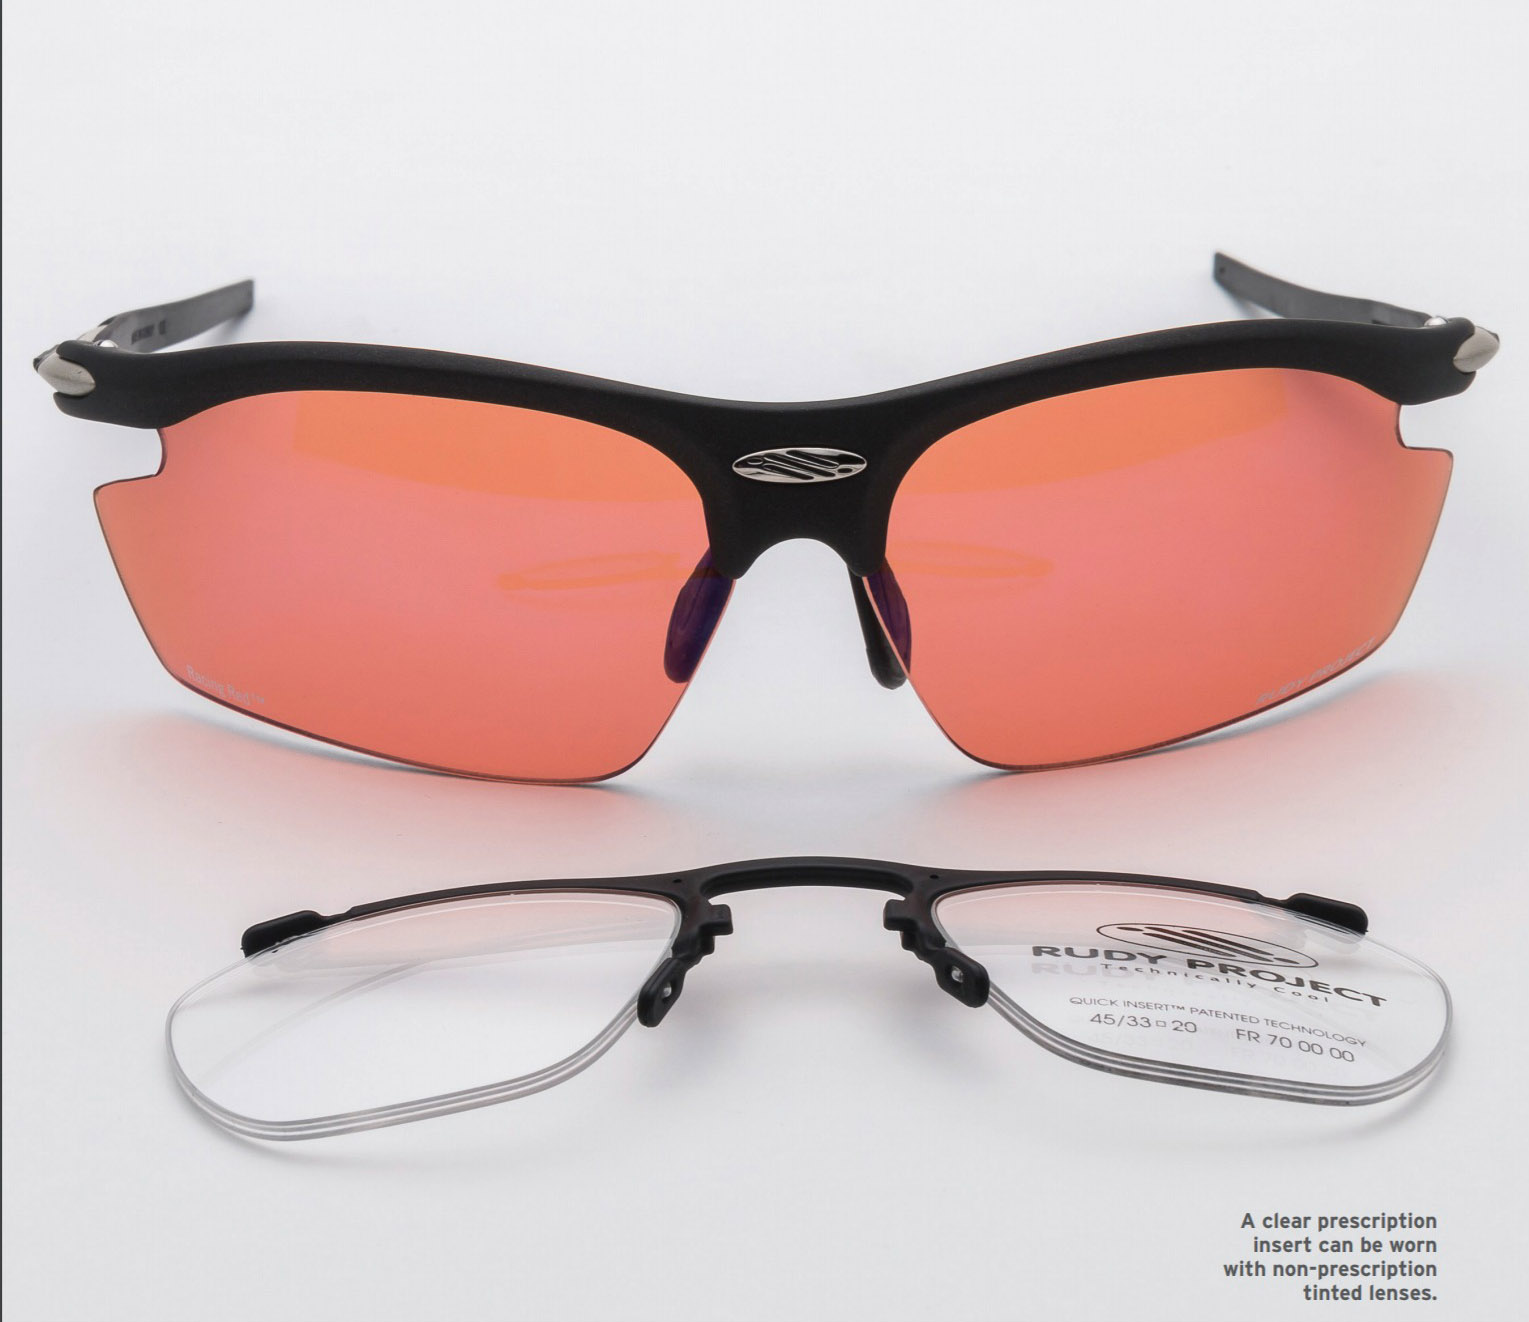 Shooting Glasses for Pistol, Rifle and Archery